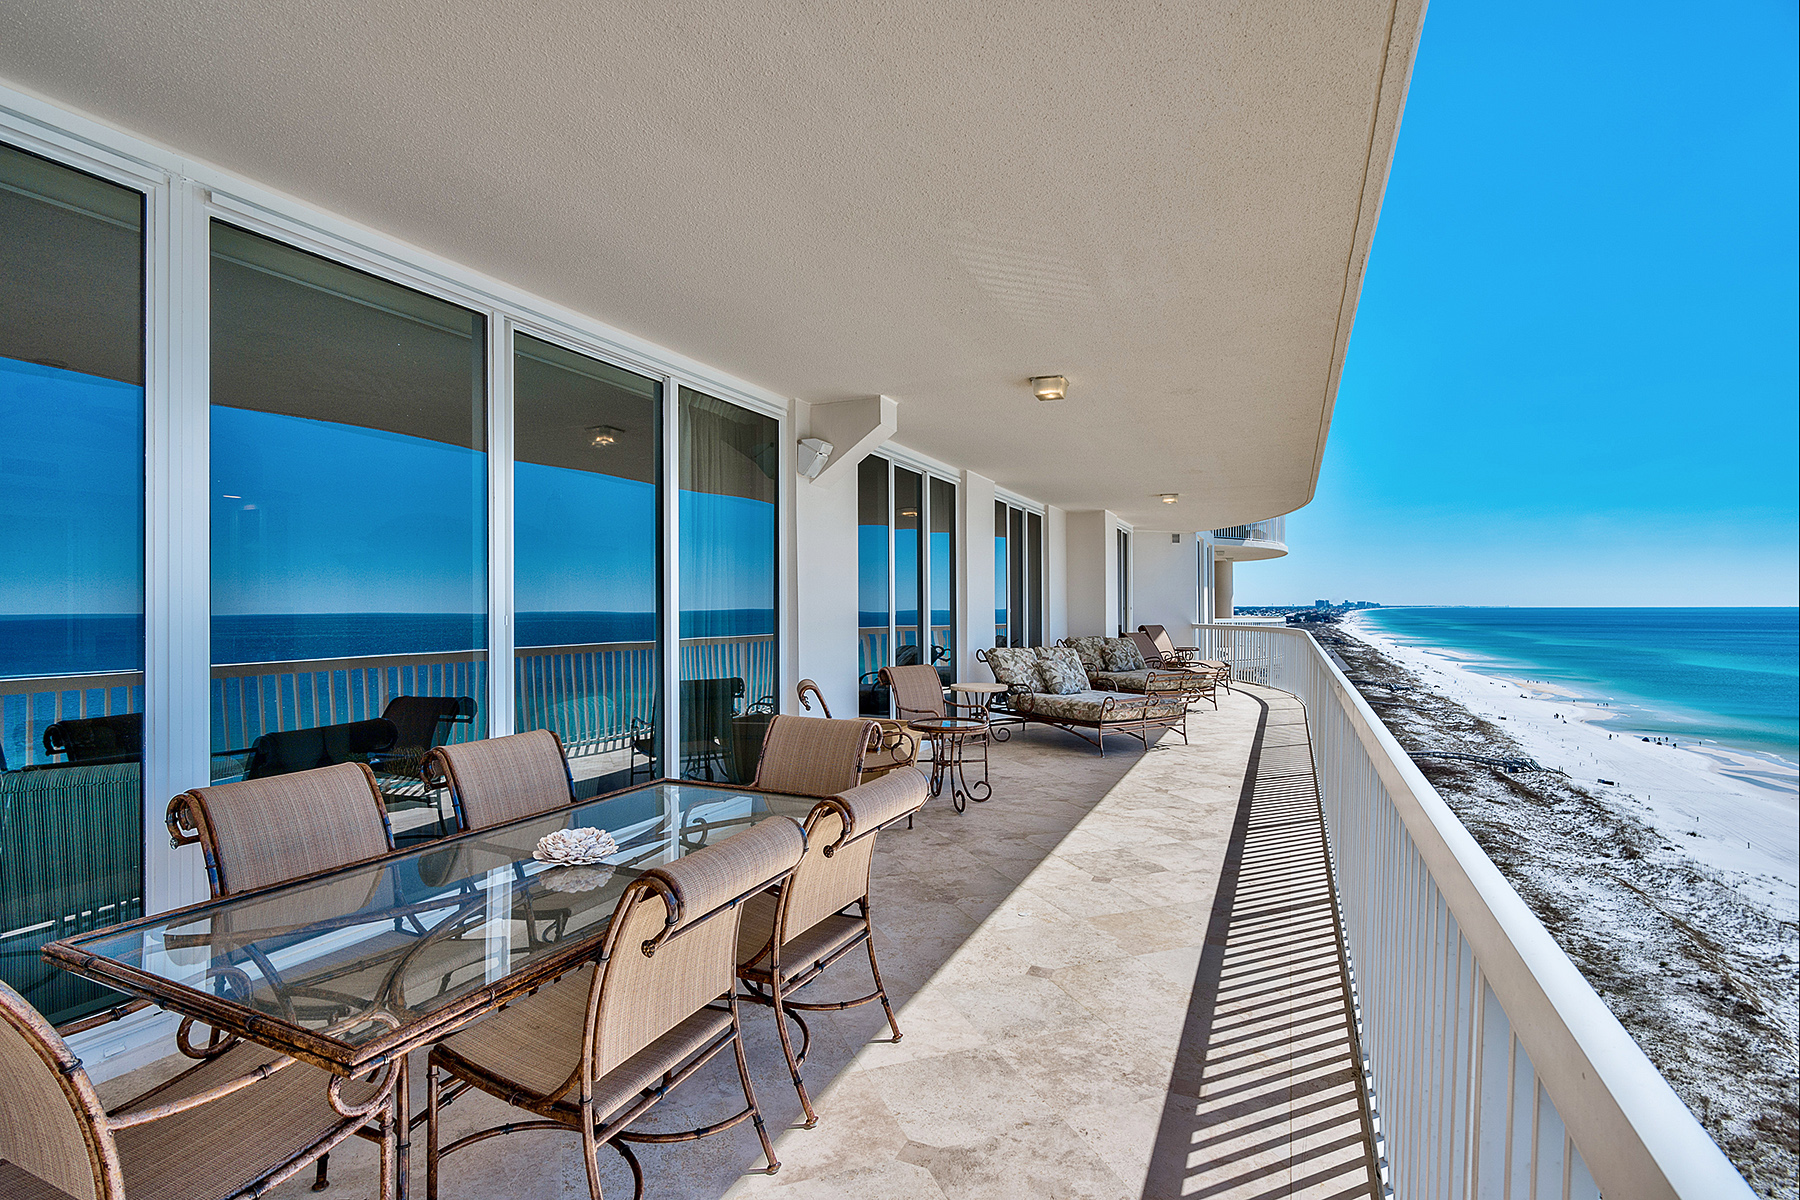 Appartement en copropriété pour l Vente à LUXURY GULF FRONT PENTHOUSE 15400 Emerald Coast Pkwy PH2B and T-135 Destin, Florida, 32541 États-Unis